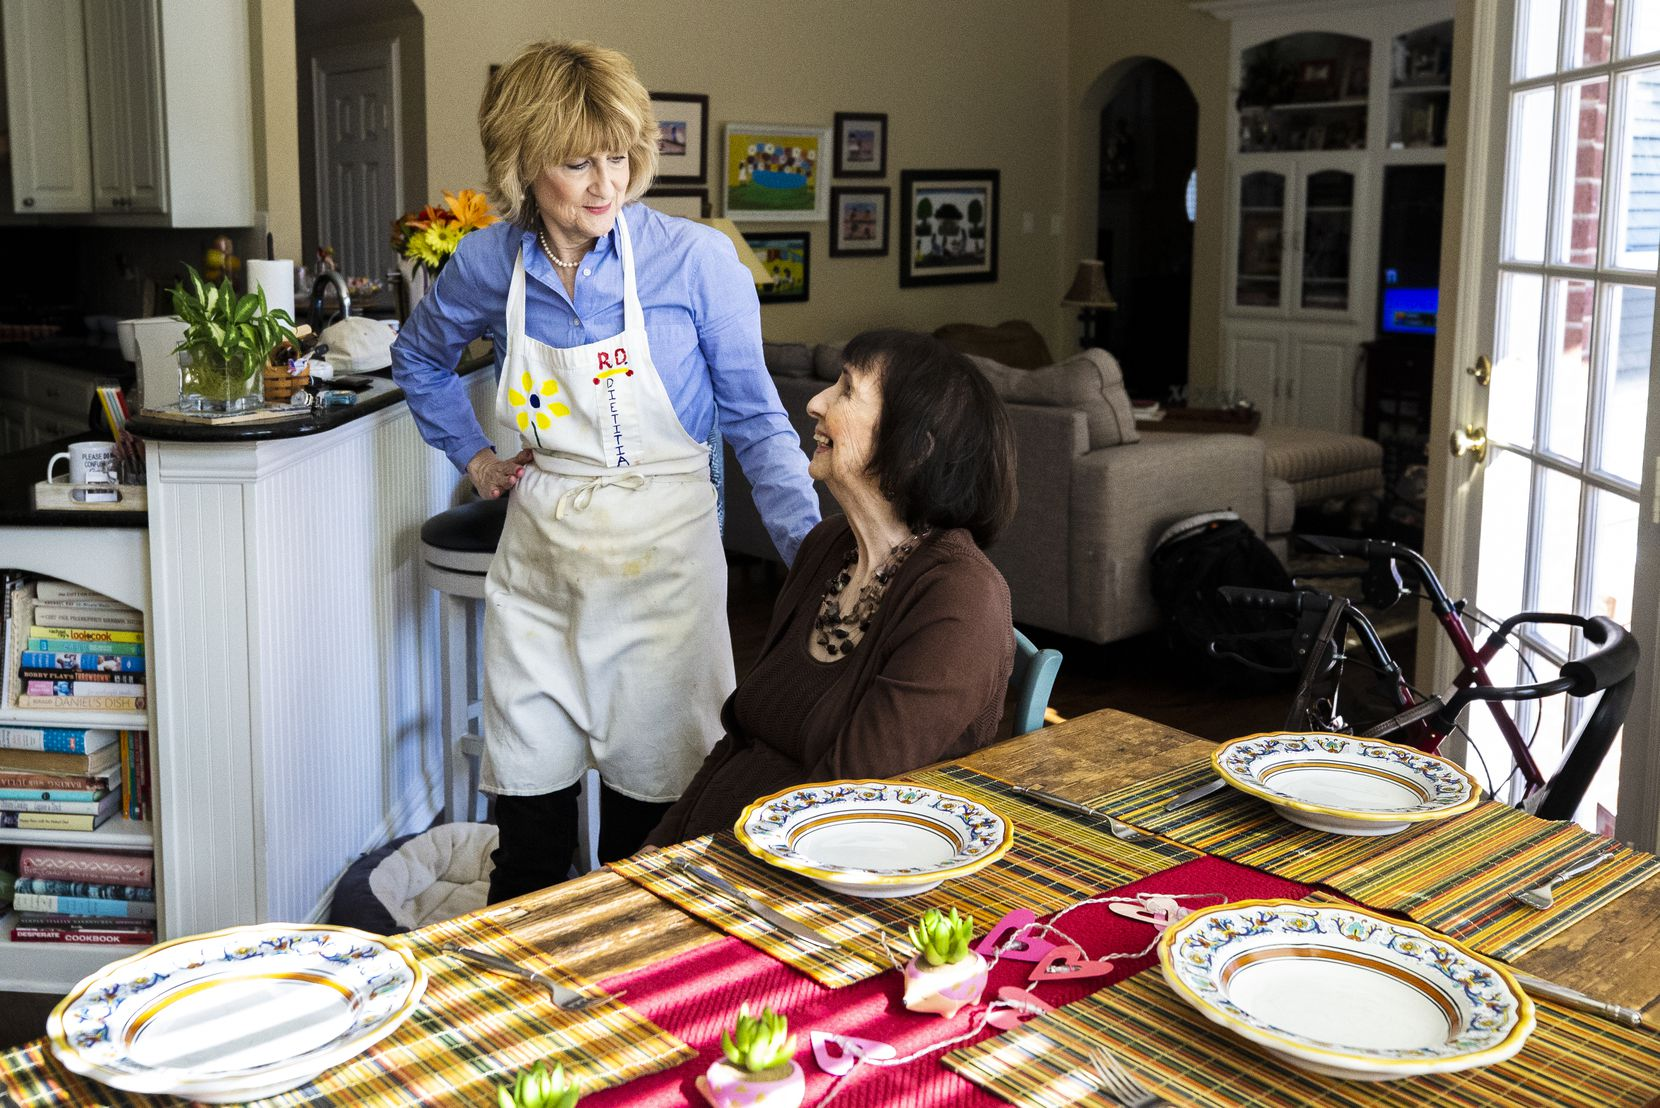 Carol Ireton-Jones, a private practice registered dietitian nutritionist, left, talks with her 95-year-old mother, Nina Ireton, while cooking spaghetti at her home in Carrollton on Jan. 25, 2019. Over the years, Carol has helped Nina with her nutrition and eats with her mother at least once a week.